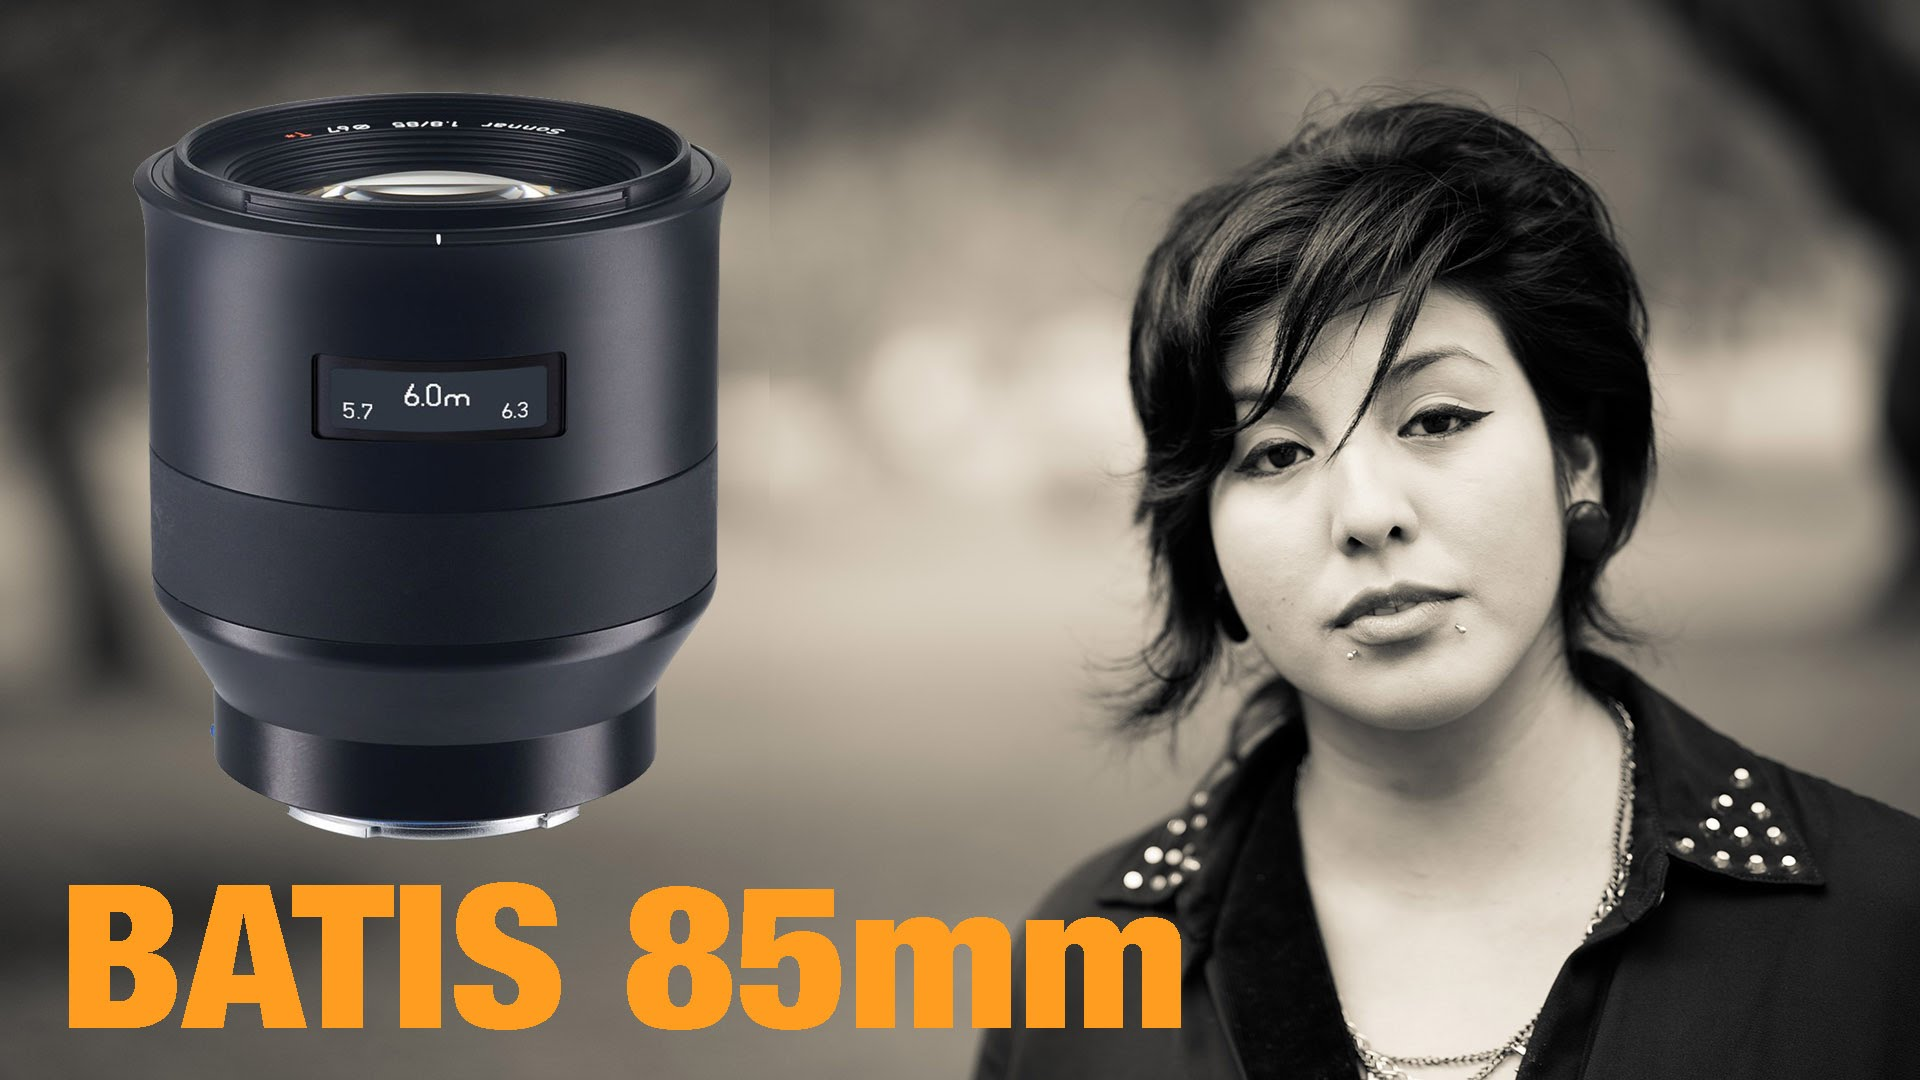 Zeiss Batis 85mm f/1.8 Review